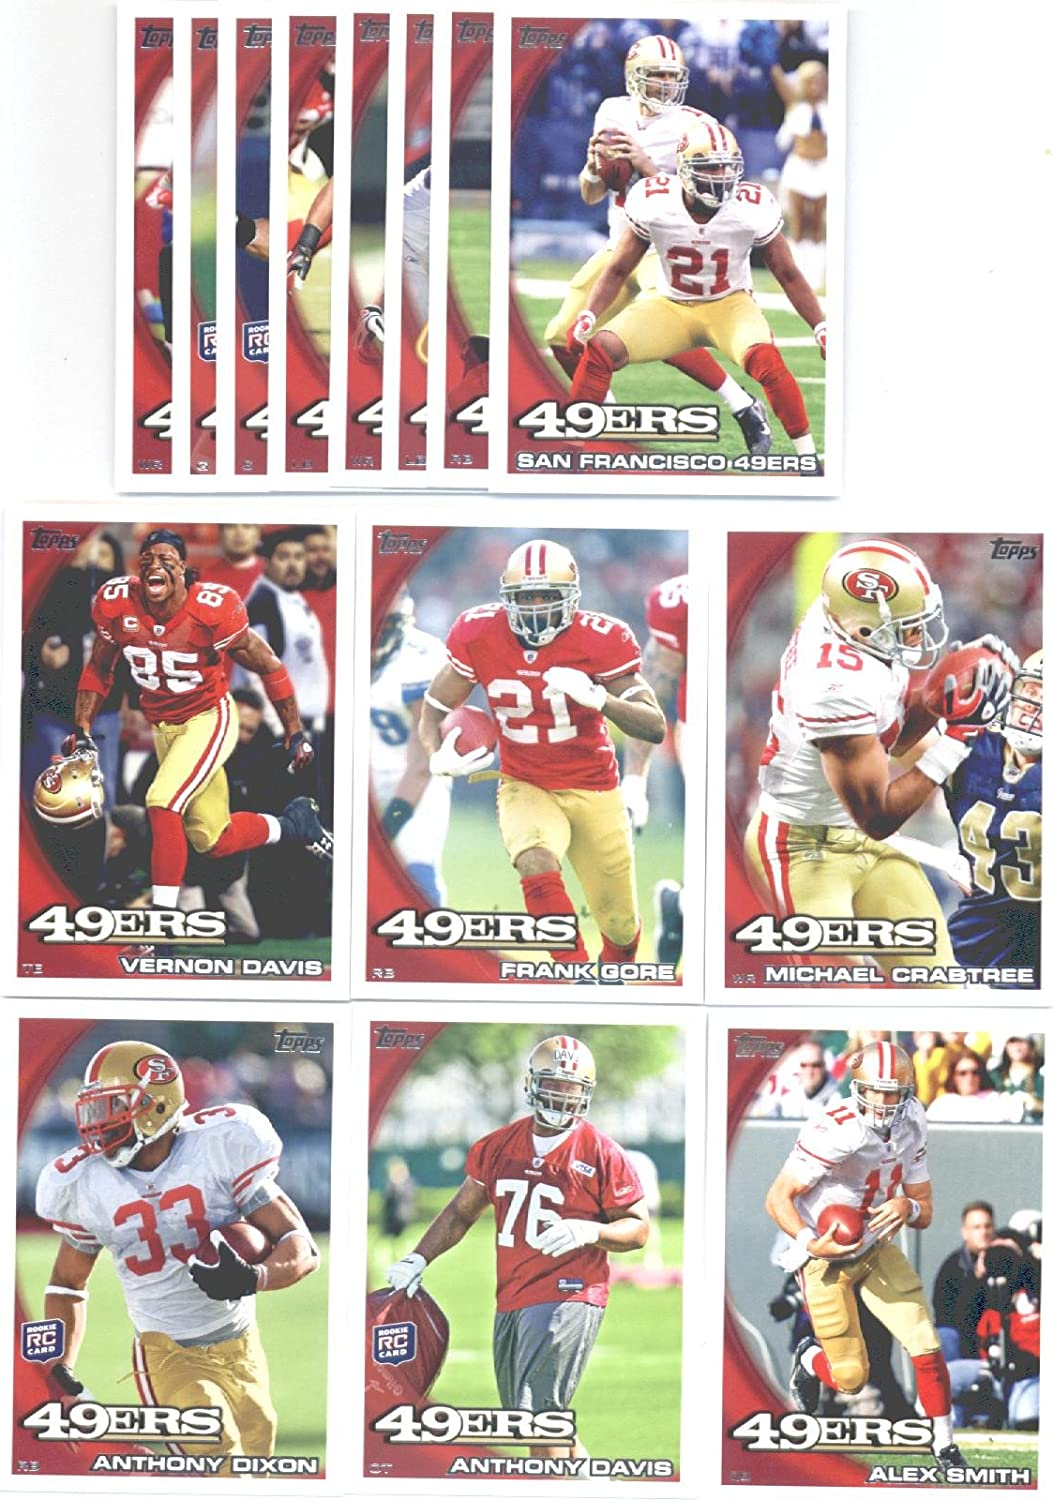 B00AWDD3WW 2011 Topps San Francisco 49ers Complete Team Set of 12 cards including Gore, Crabtree, Willis, Aldon Smith RC, Ronald Johnson RC, Hunter RC, Colin Kaepernick RC and more ! 81WogzEZW3L